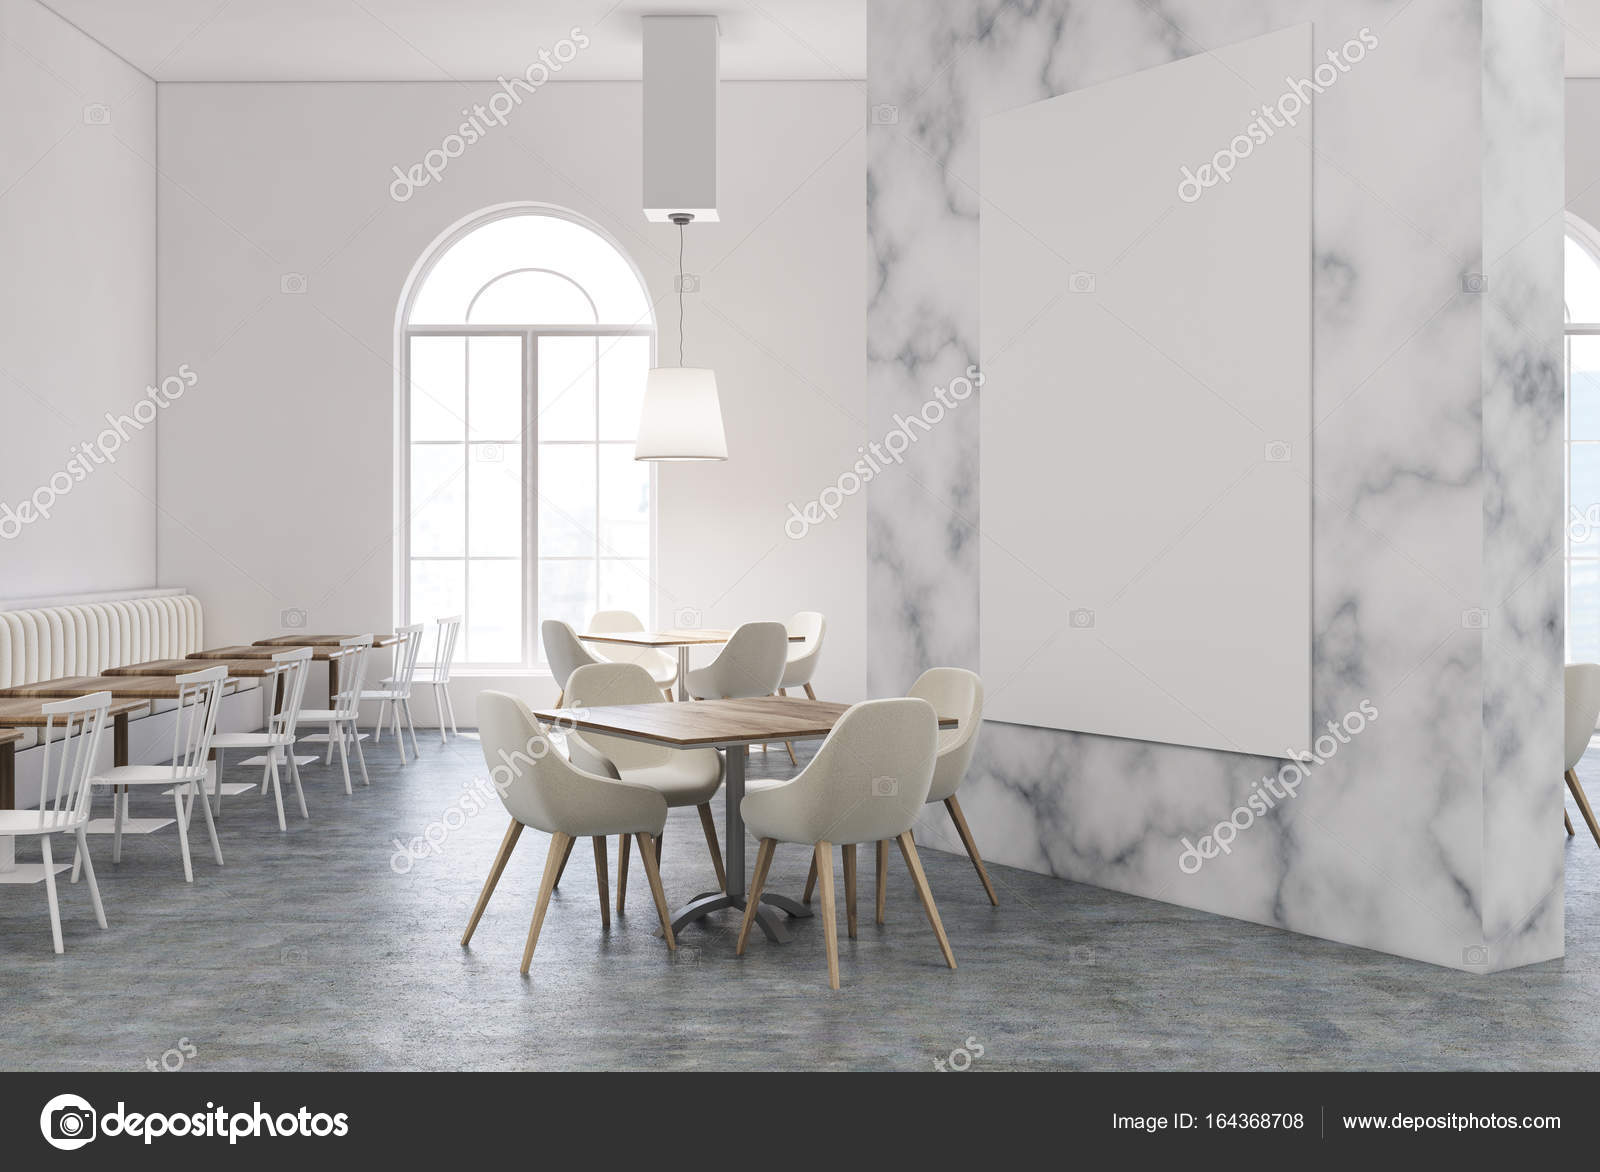 White Marble Restaurant Interior With A White And Wooden Floor, Wooden  Tables And White Chairs. A Large Poster On The Wall. Side View.